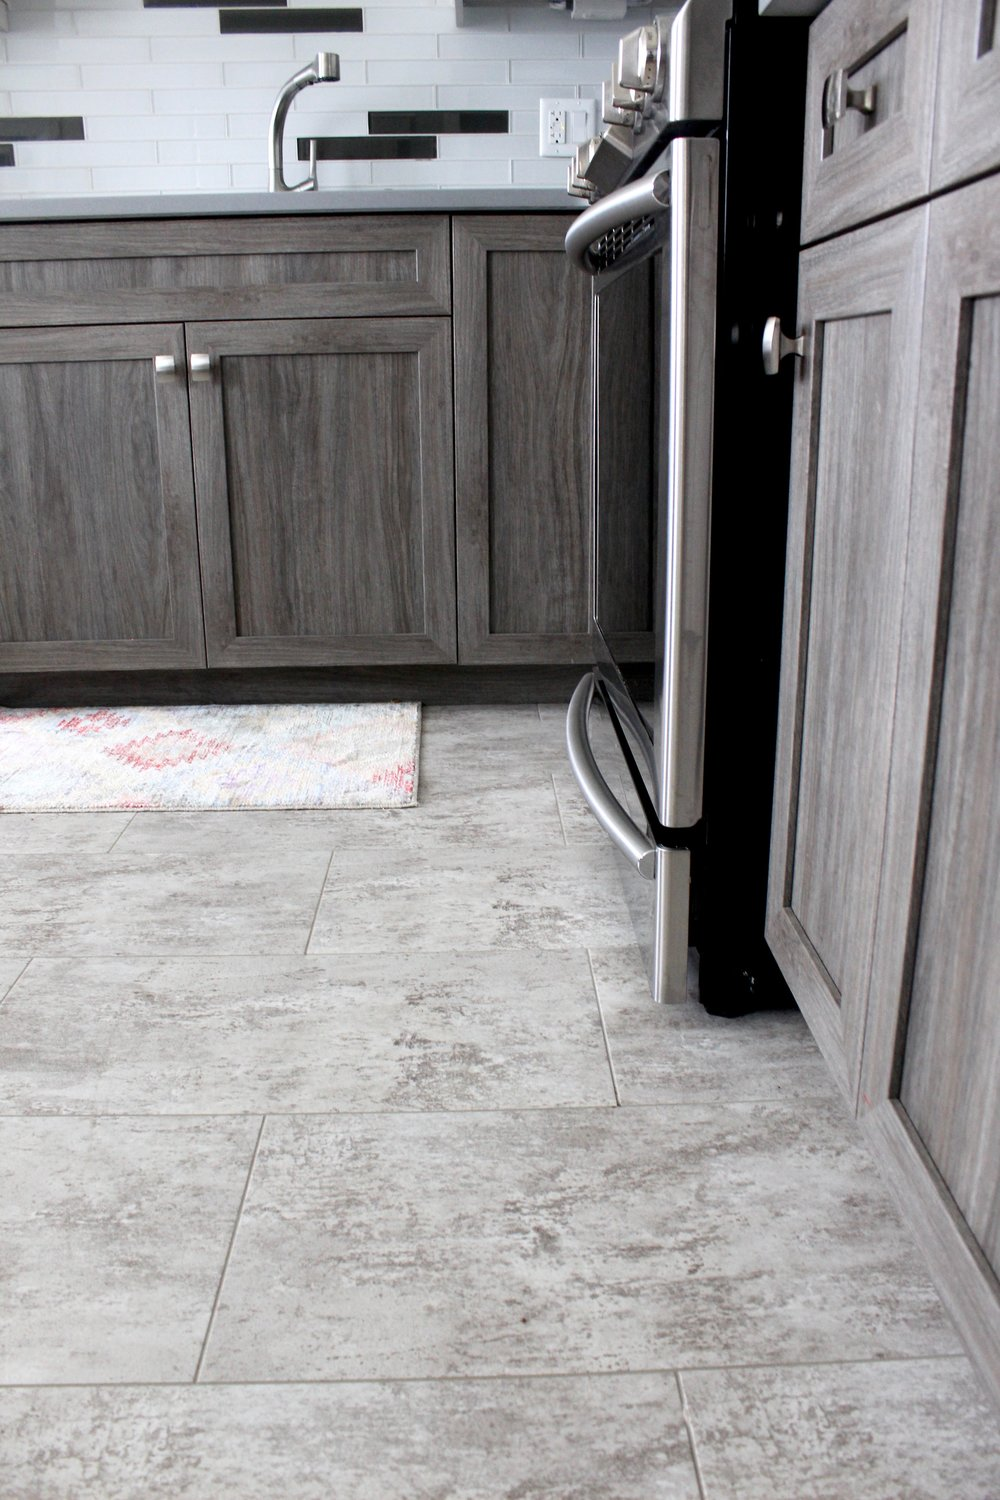 Vinyl tile-look grouted flooring